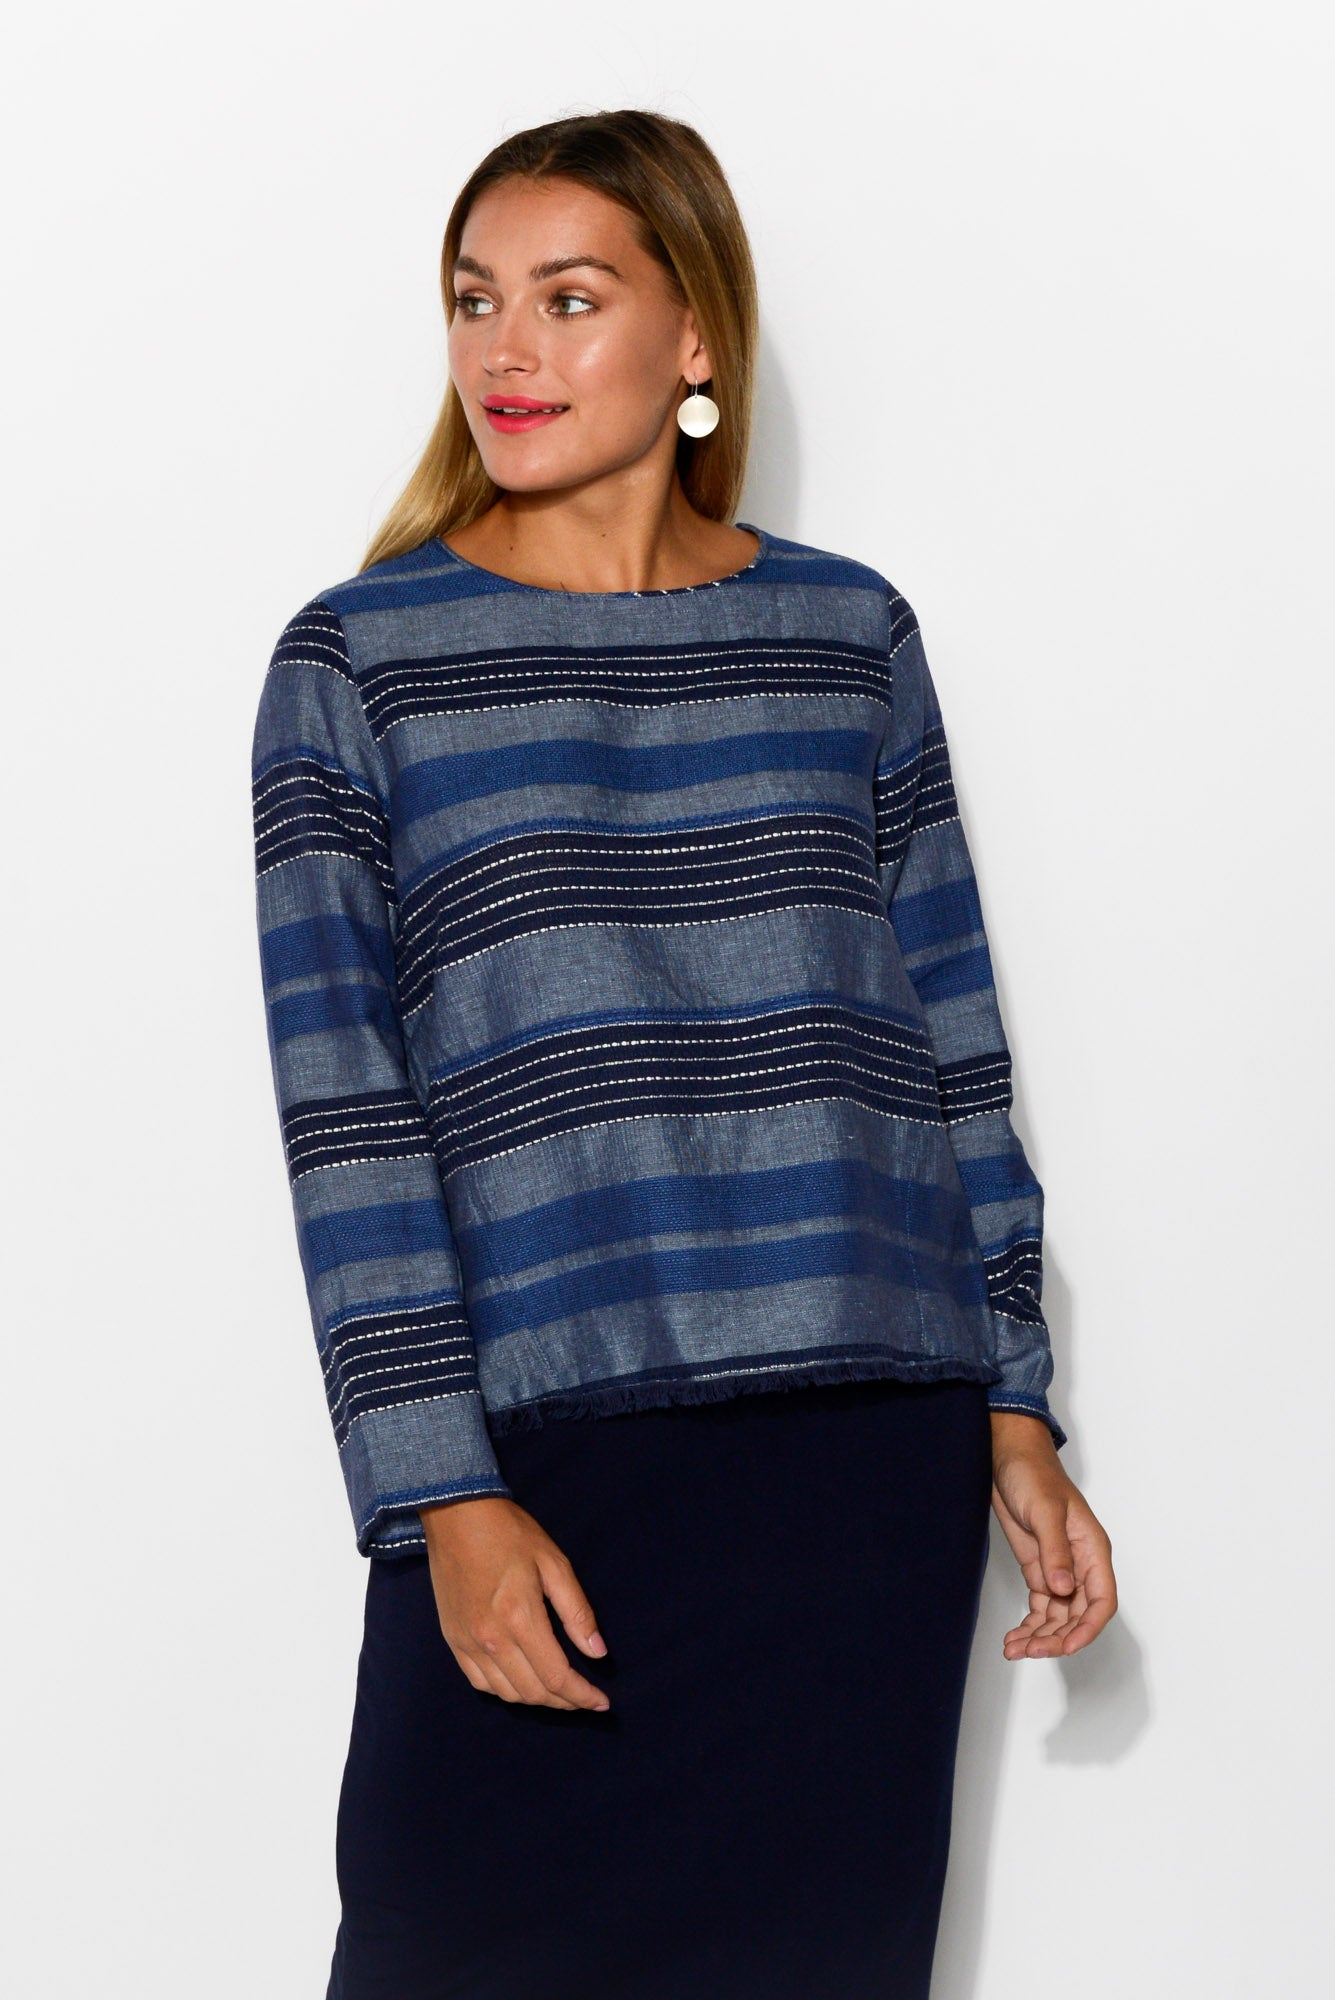 Prue Blue Stripe Linen Cotton Top - Blue Bungalow